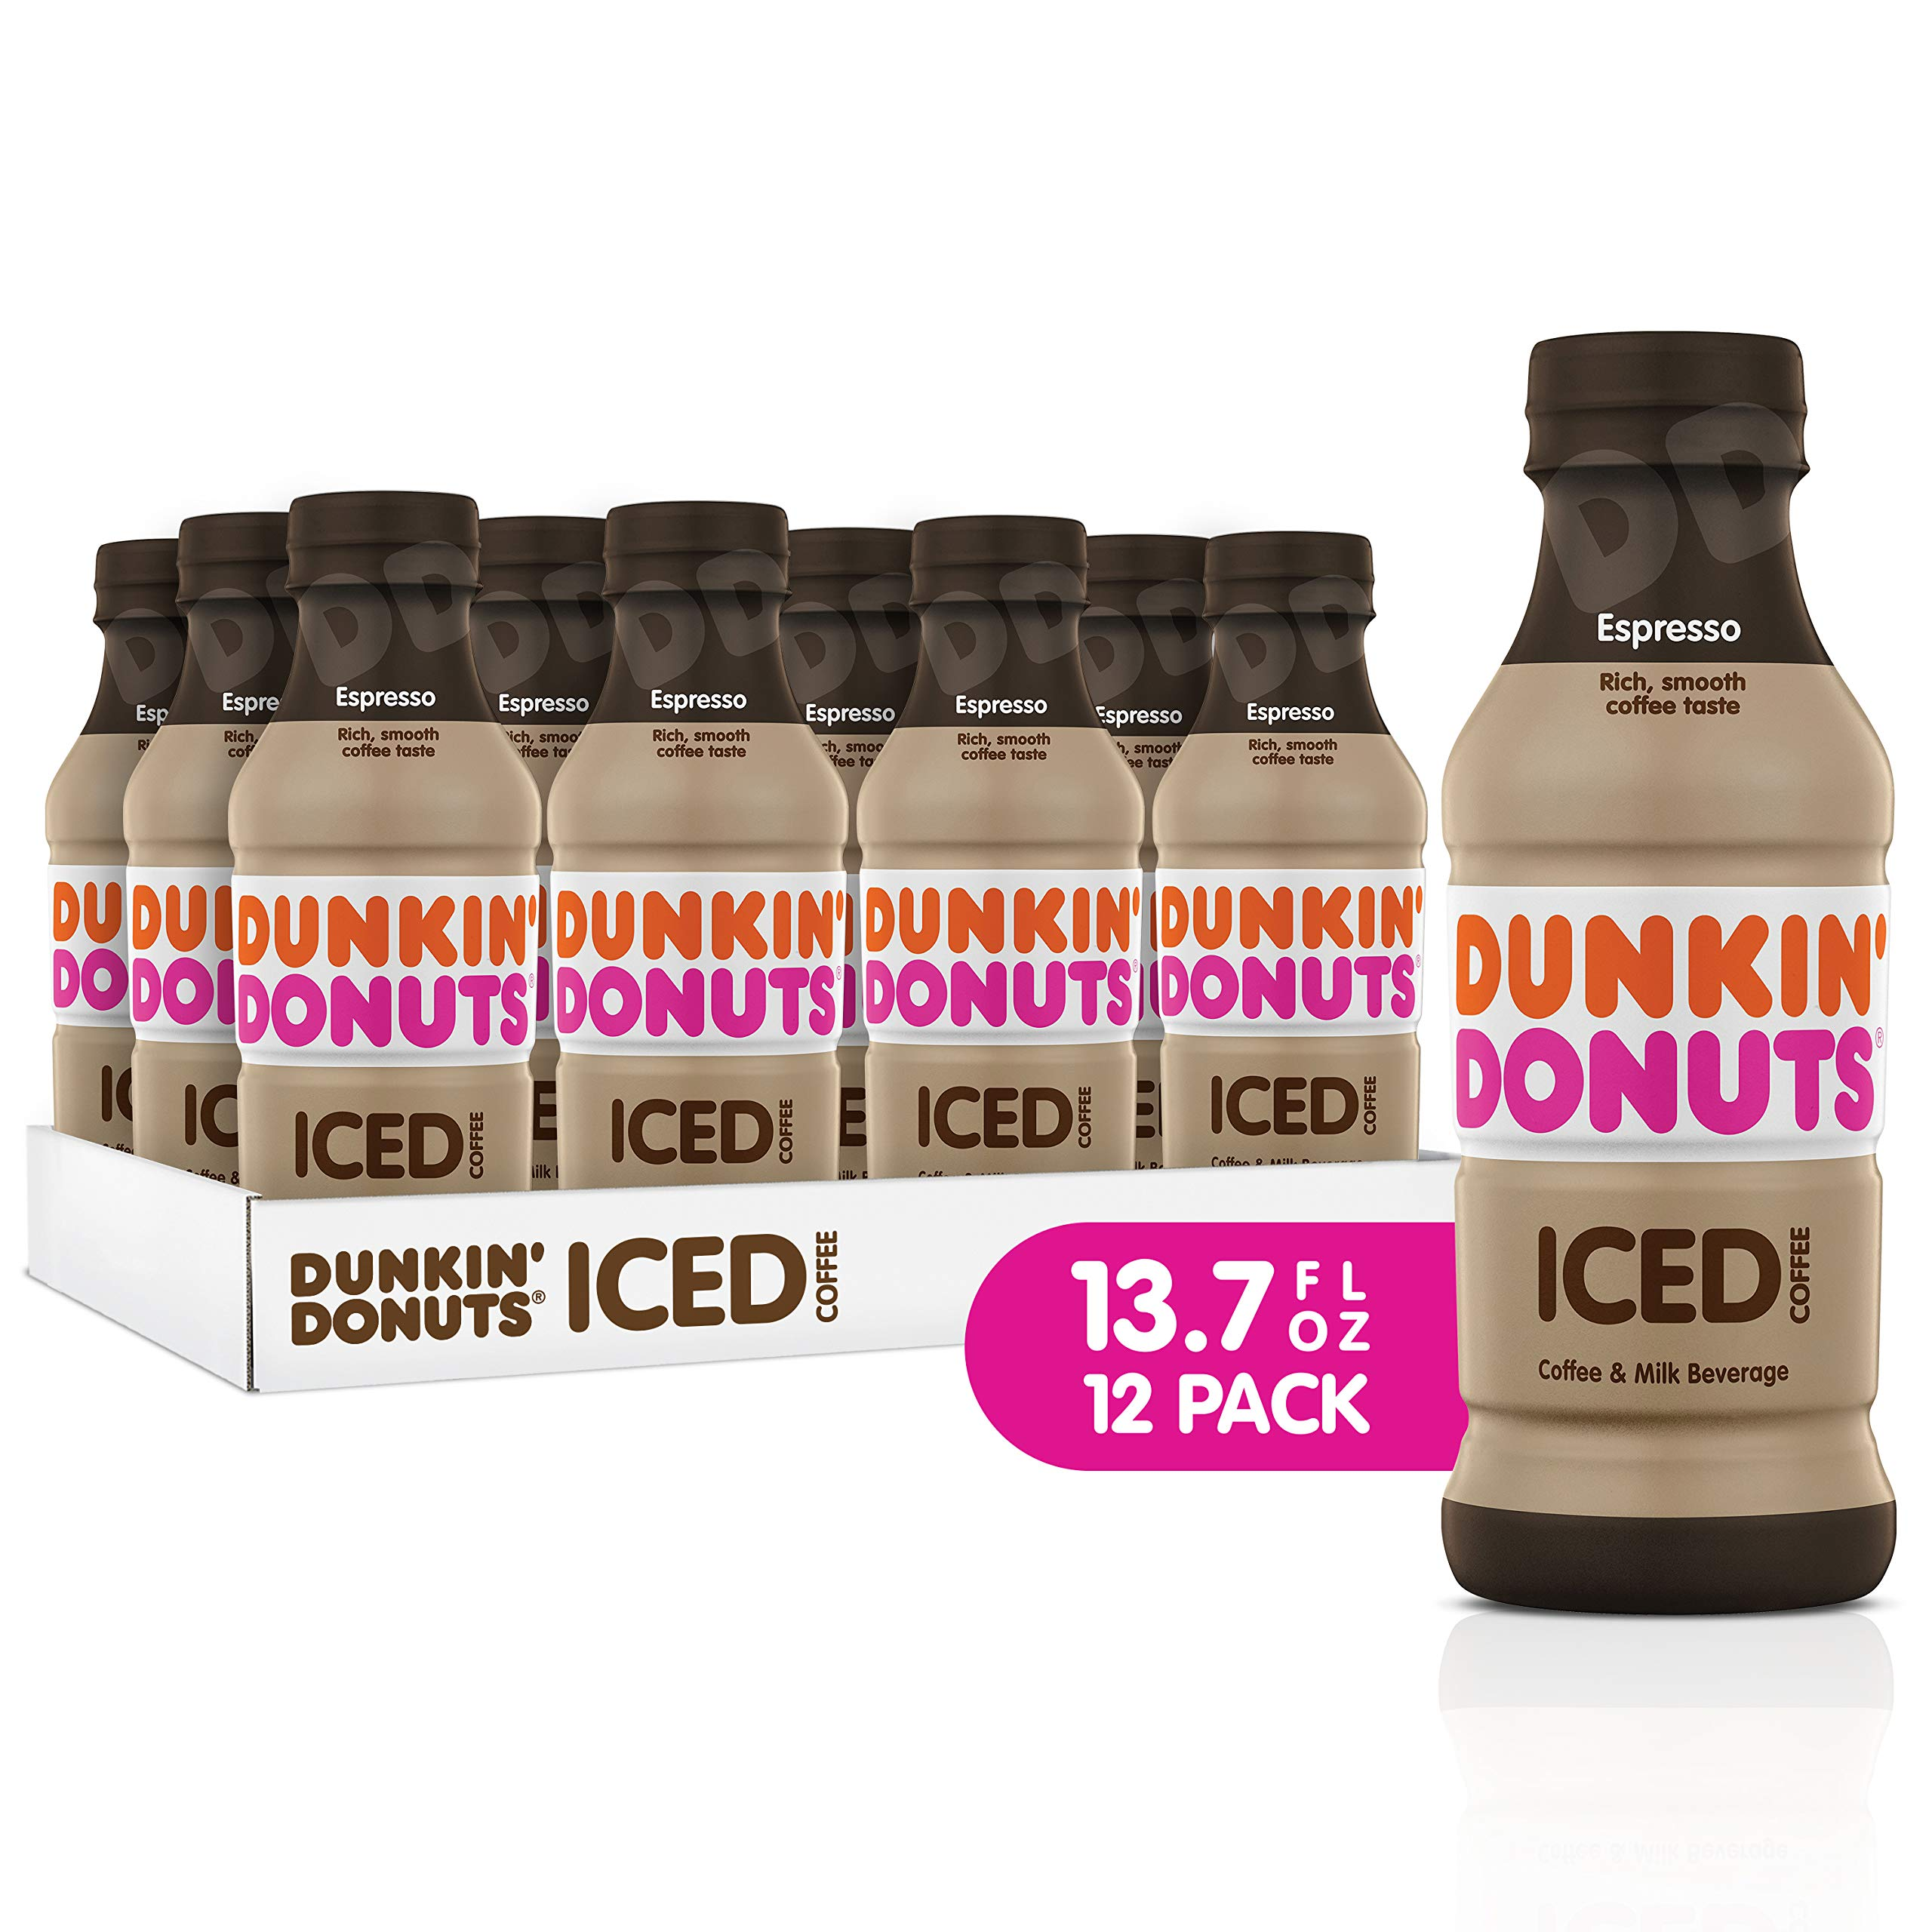 Dunkin Donuts Iced Coffee, Espresso, 13.7 Fluid Ounce (Pack of 12) by Dunkin Donuts